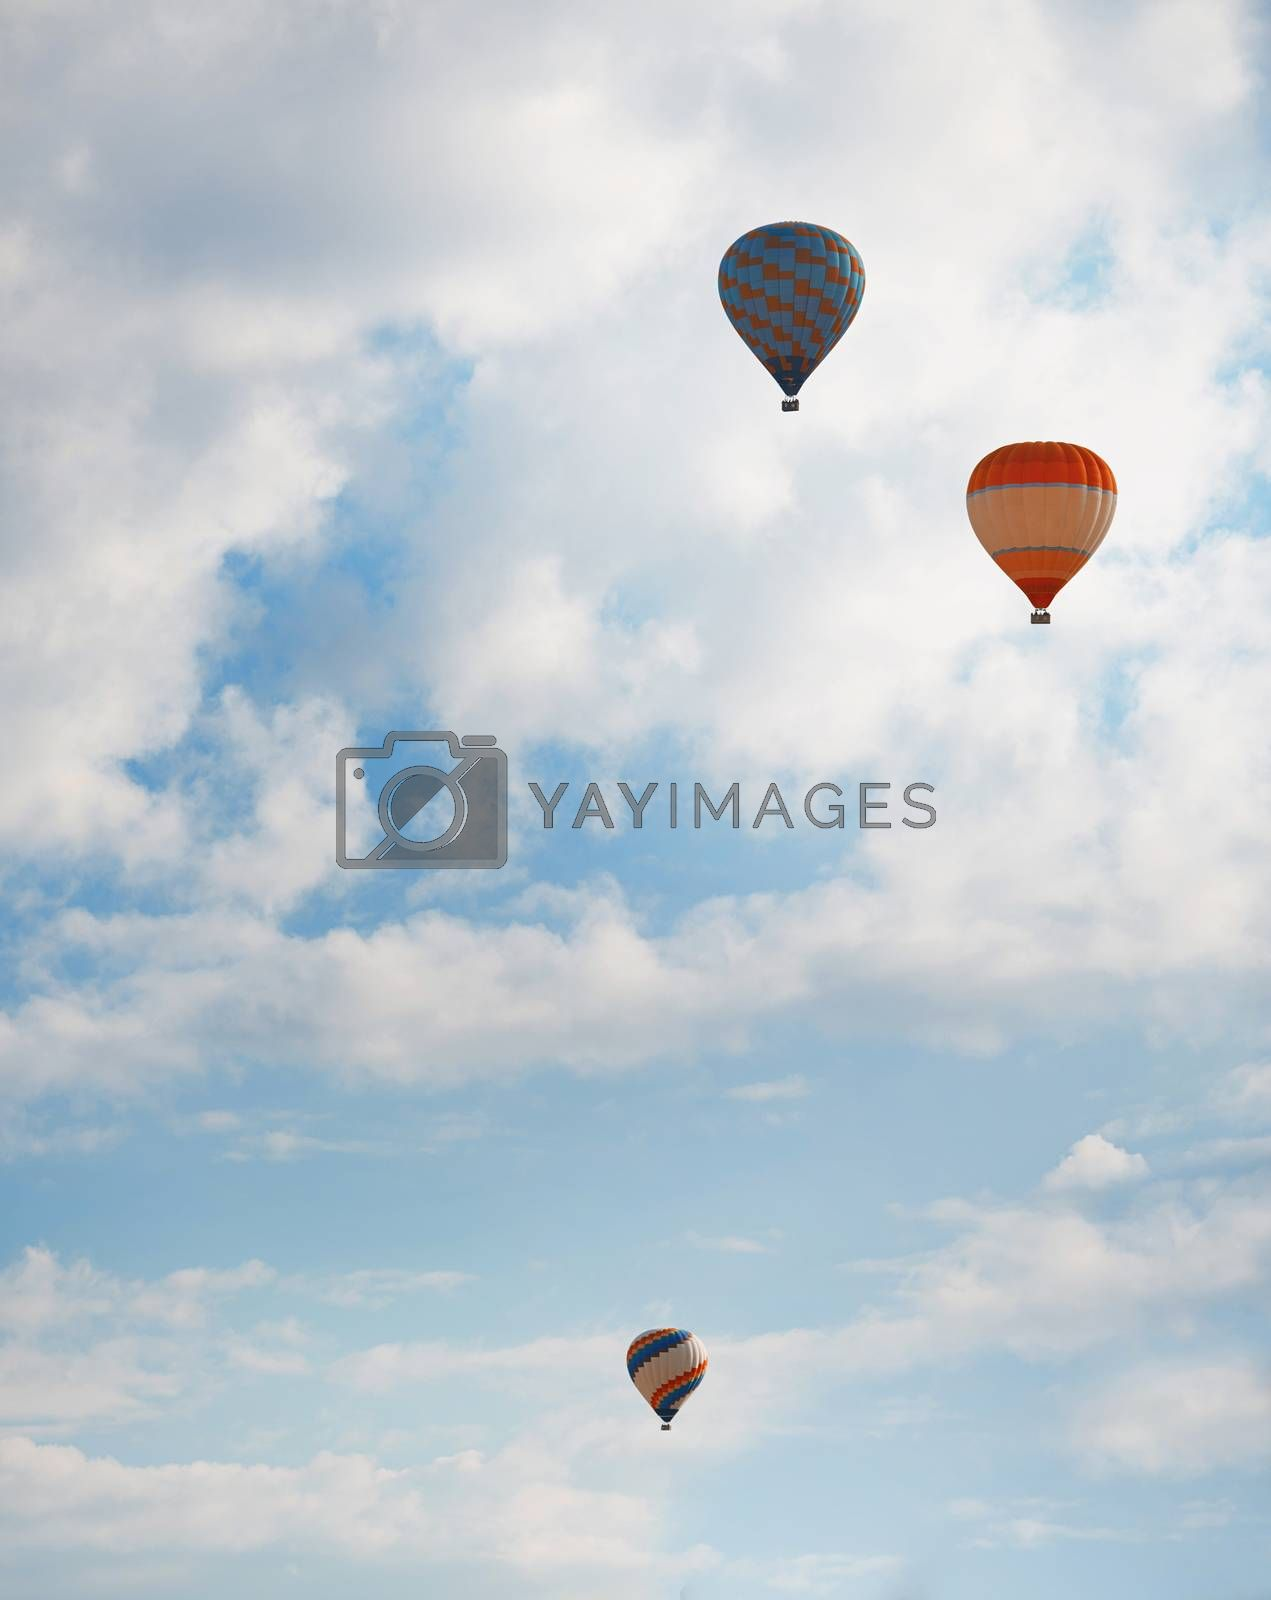 Air balloons in blue sky by Novic